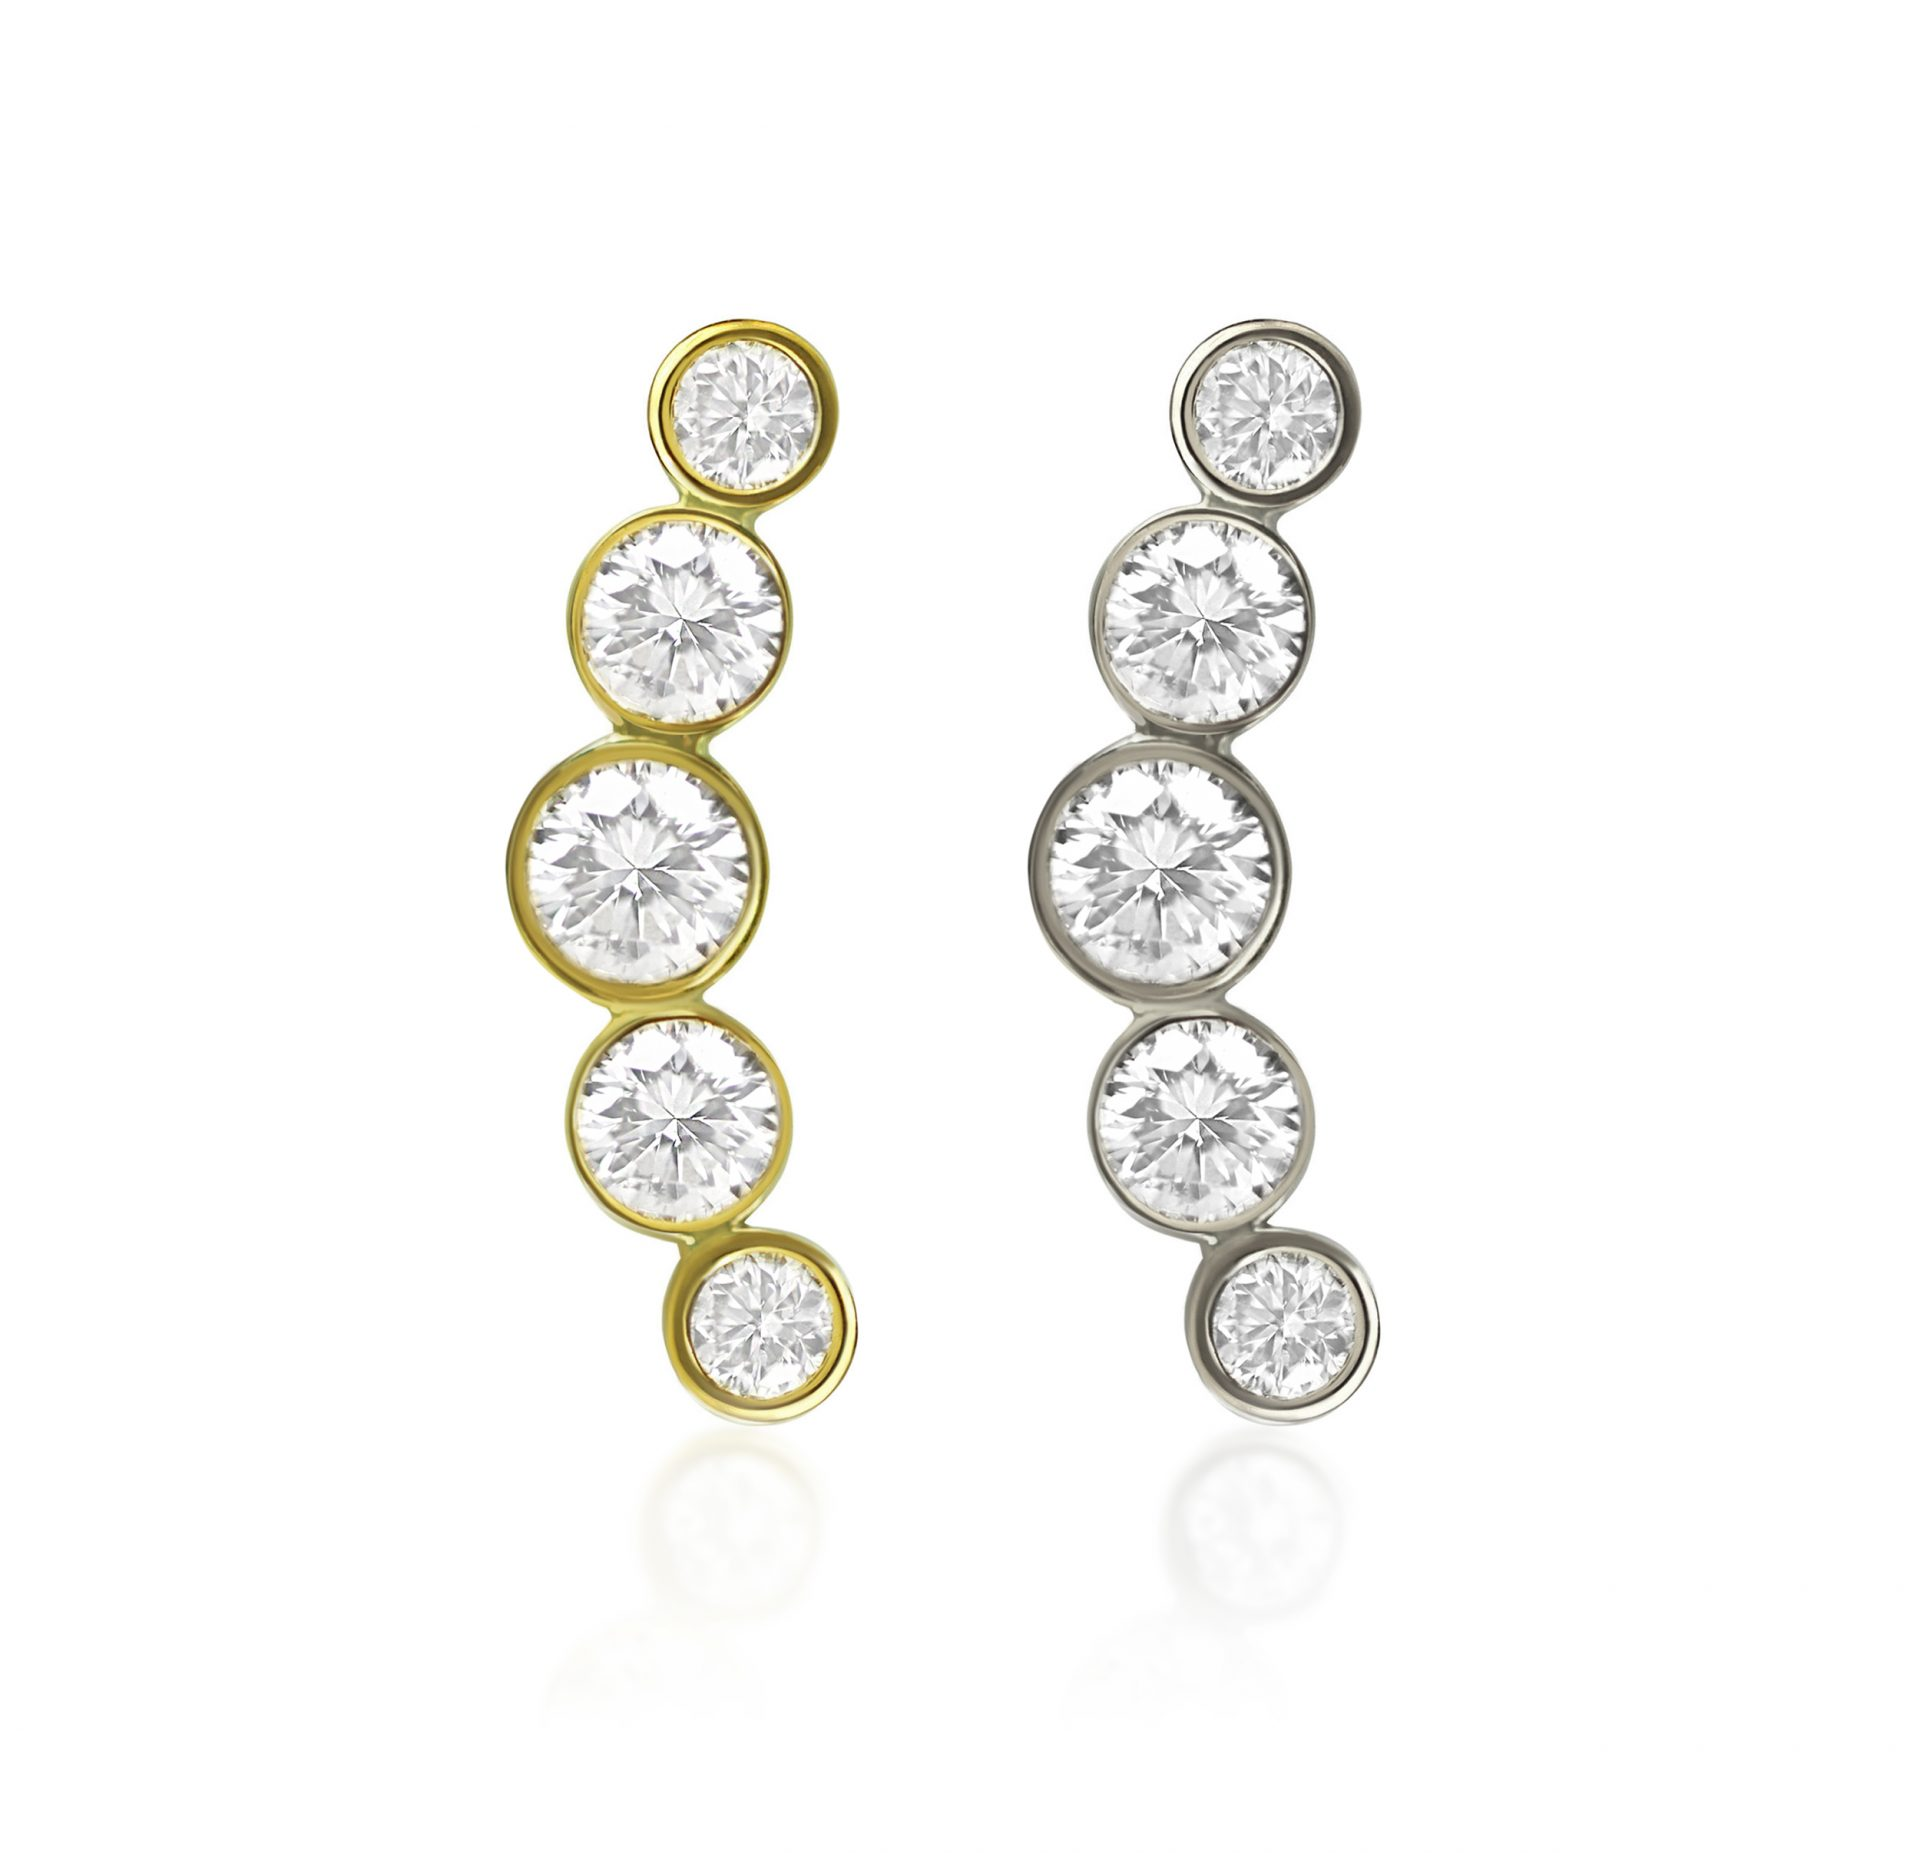 lena-cohen-crescent-helix-curved-natural-diamonds-cartilage-luxury-piercing-earring-stud-18k-white-gold